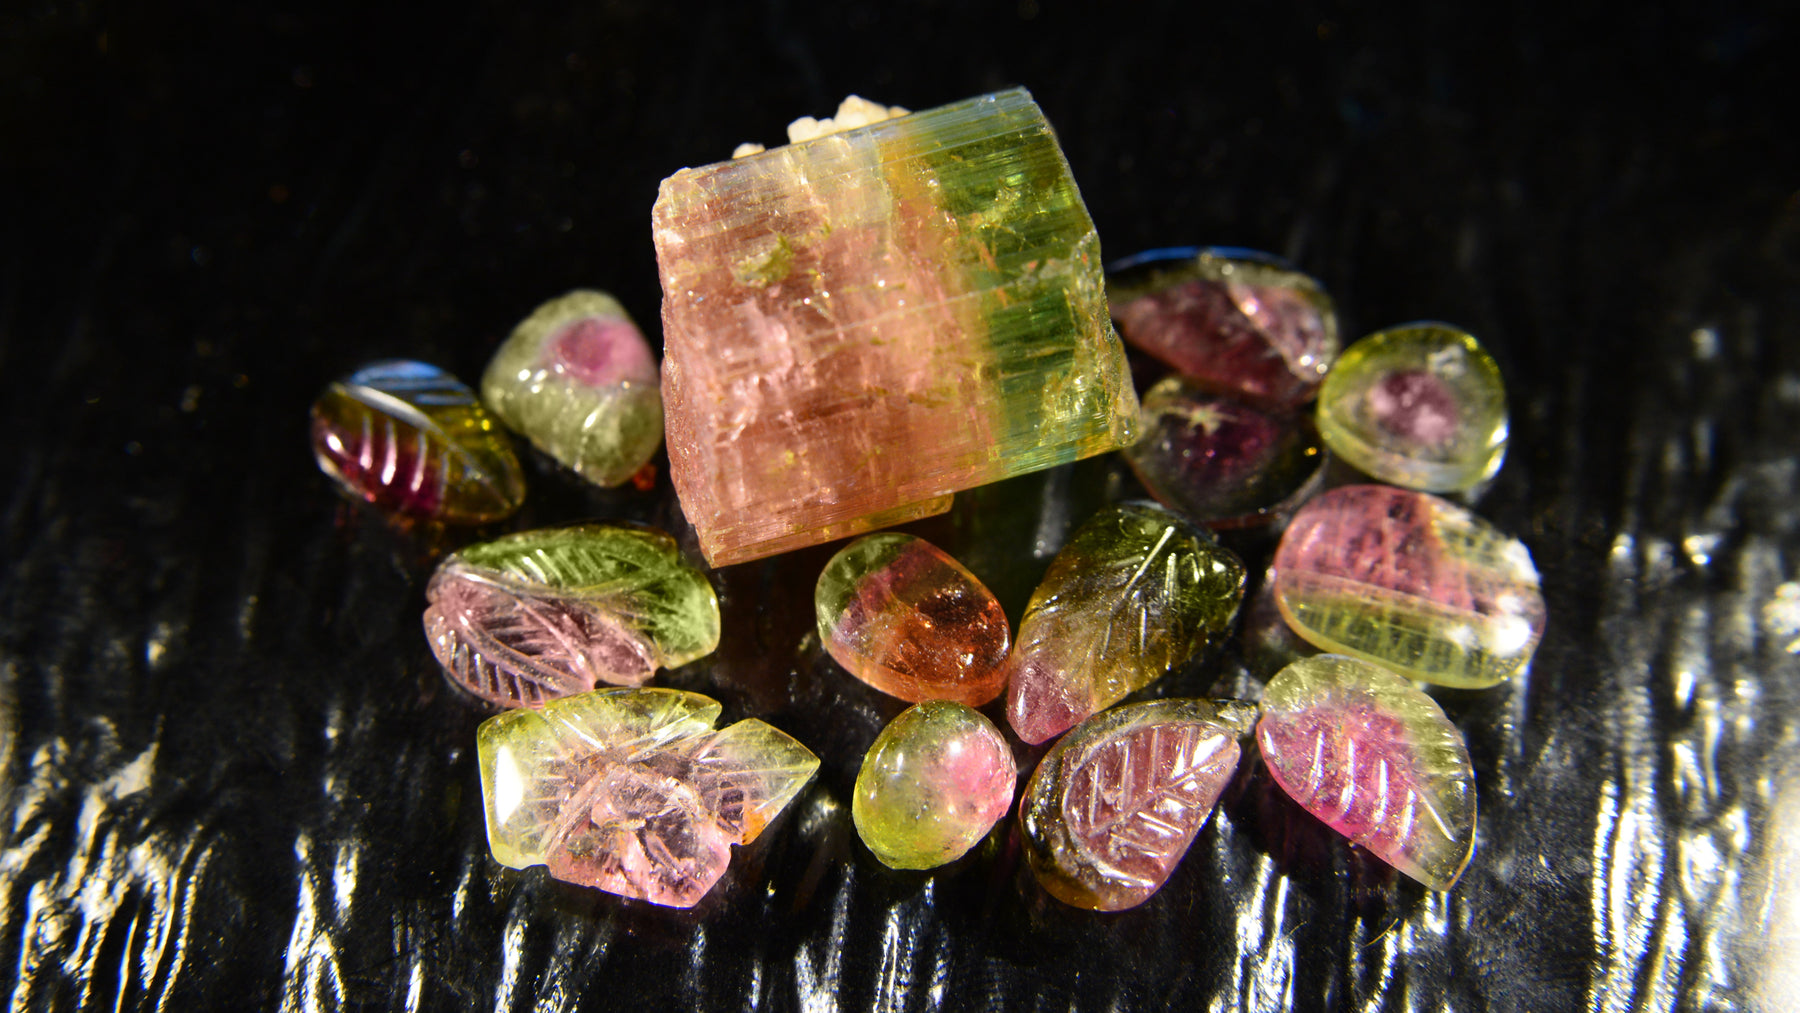 Watermelon Tourmaline elbaite crystal gemstone healing metaphysical properties & meaning